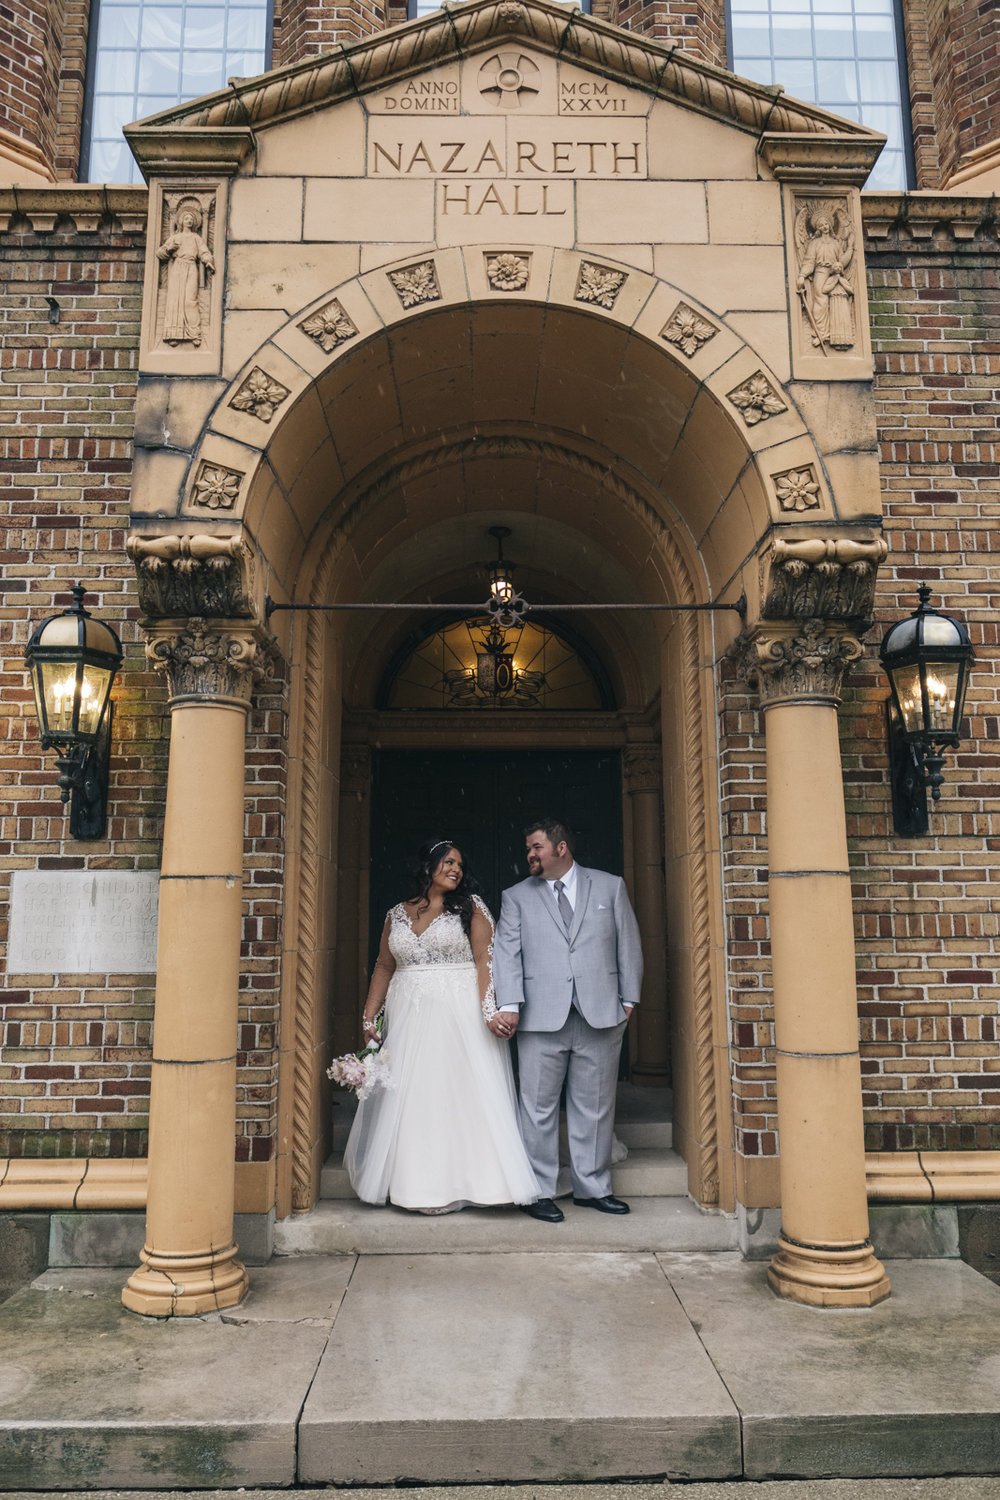 Bride and groom portrait at Nazareth Hall.